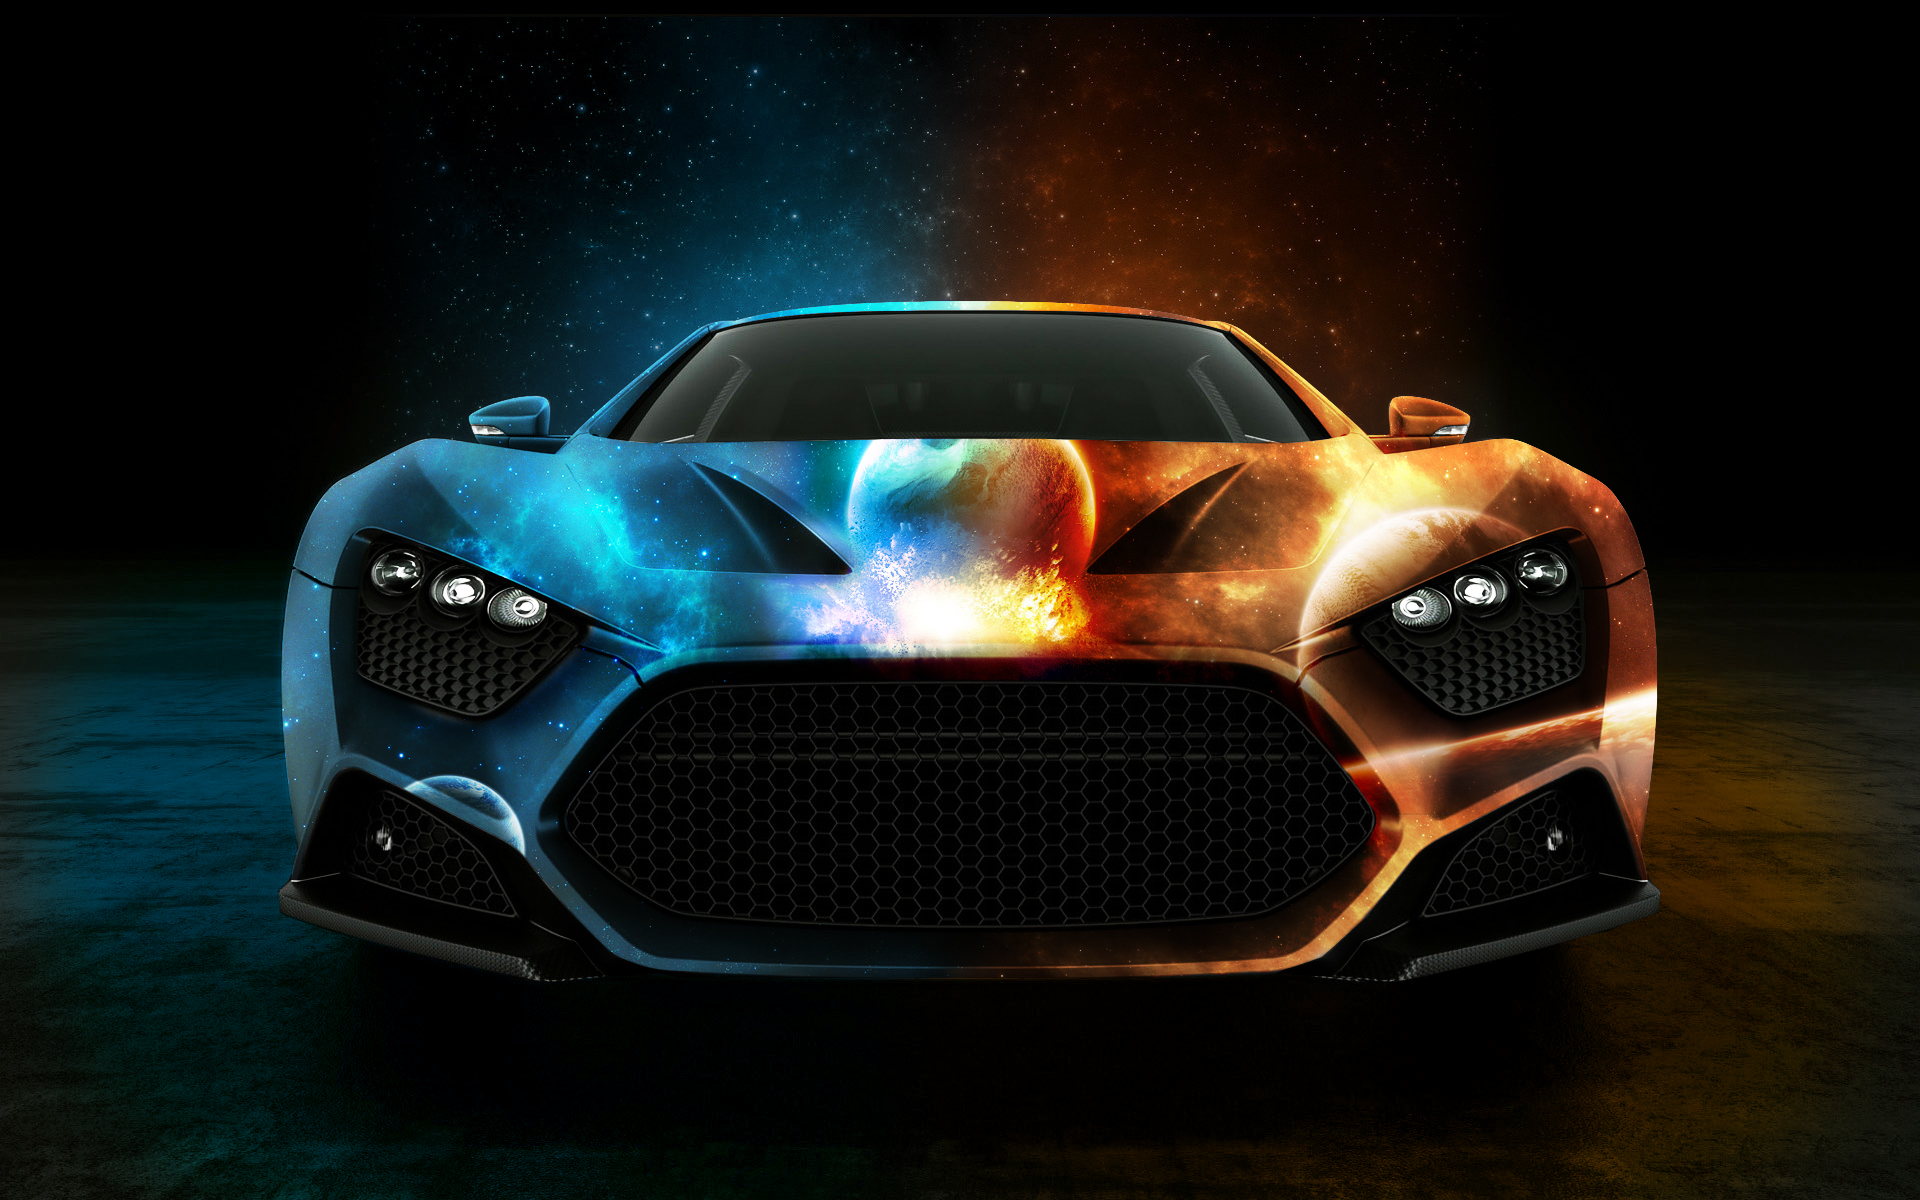 Awesome car wallpapers